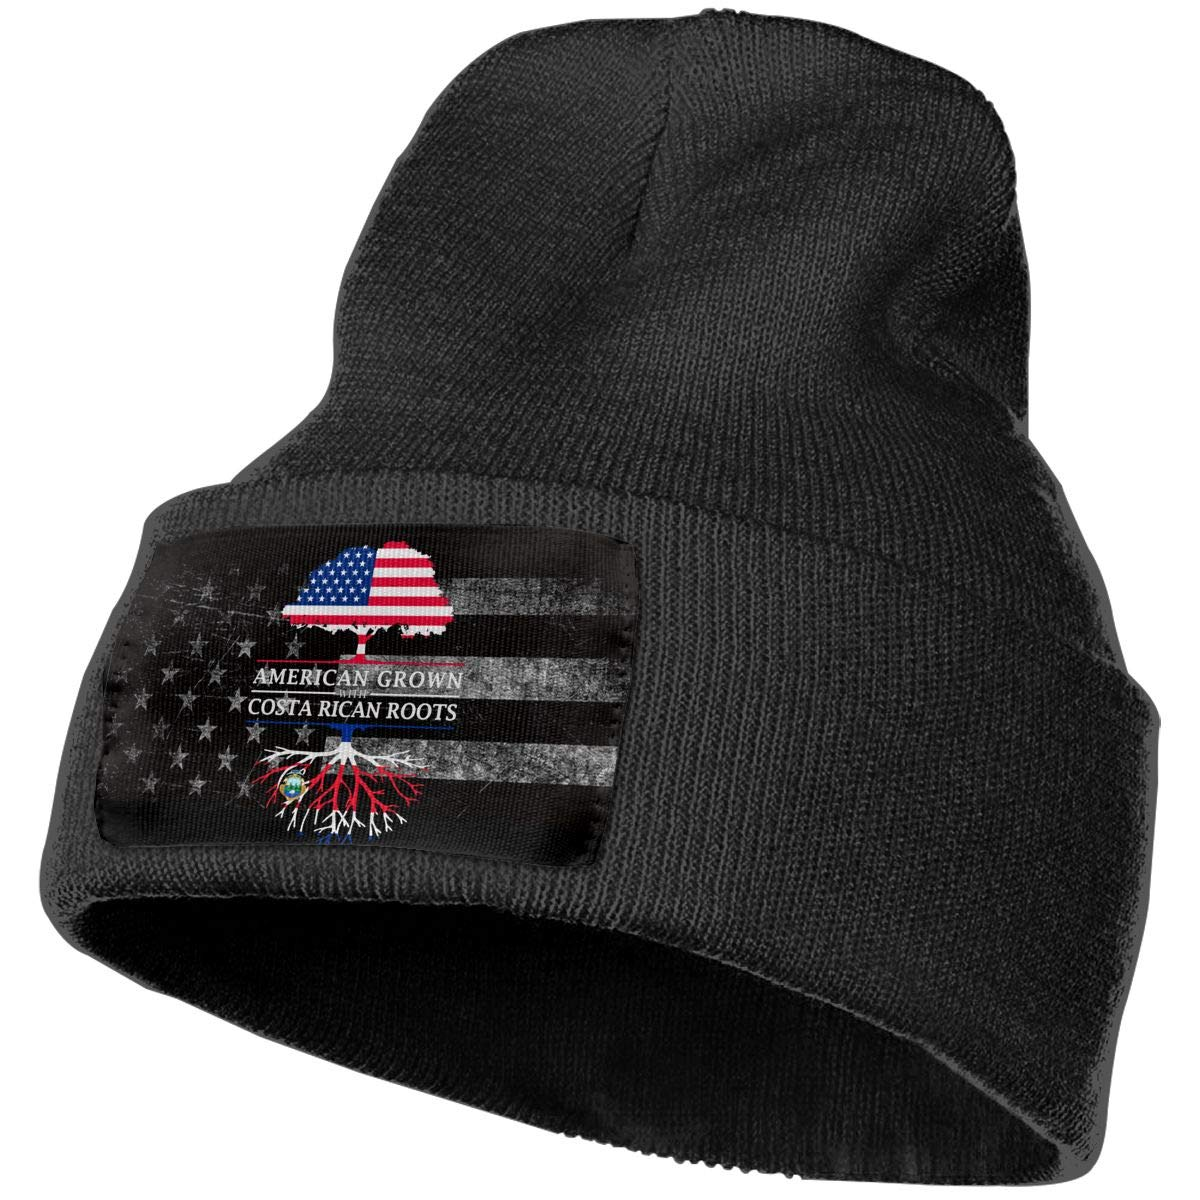 FORDSAN CP American Grown with Costa Rican Roots Mens Beanie Cap Skull Cap Winter Warm Knitting Hats.